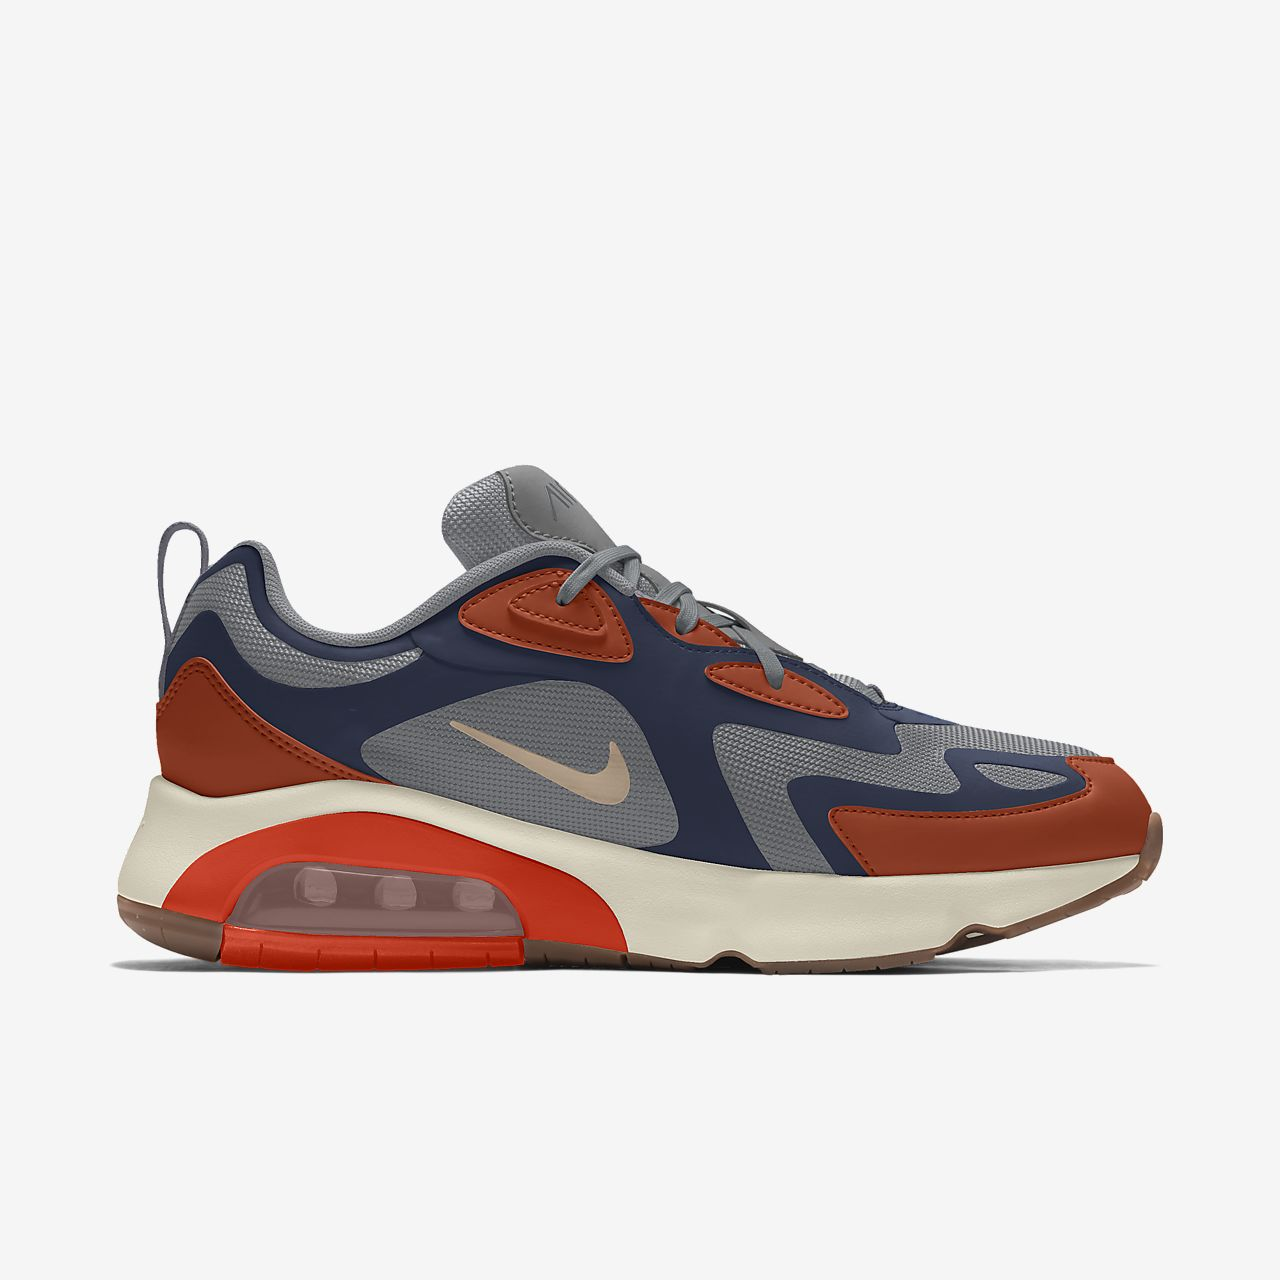 Chaussure personnalisable Nike Air Max 200 By You pour Homme